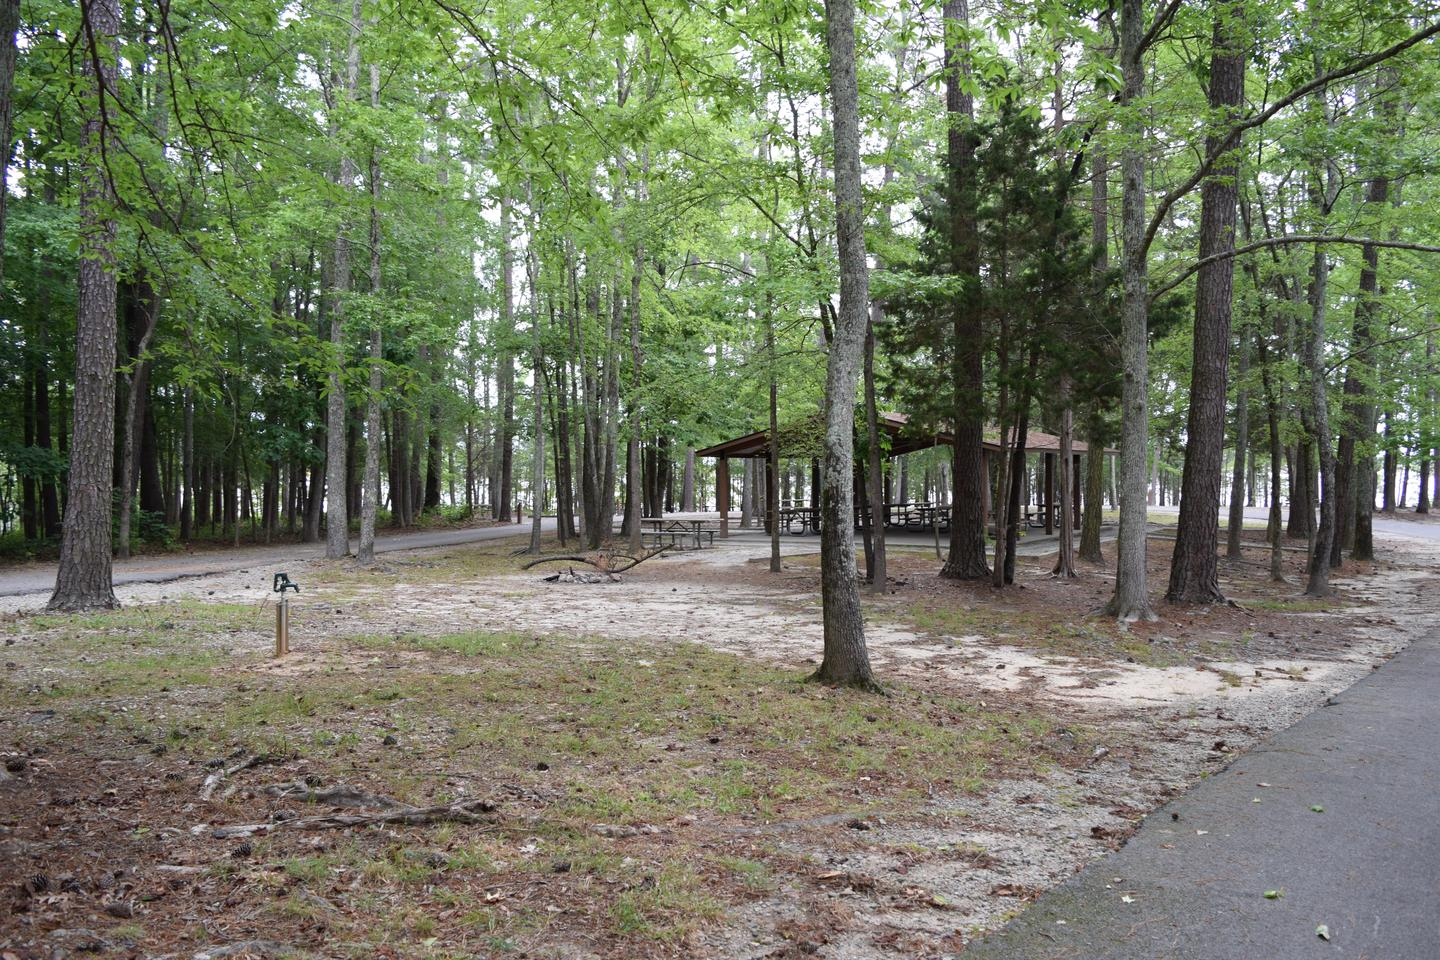 Piney Woods Group Camping Area ShelterWelcome to Piney Woods Group Camping Area! This is a picture of the shelter located within the camping area. You can also see another spigot that can be used for this area.